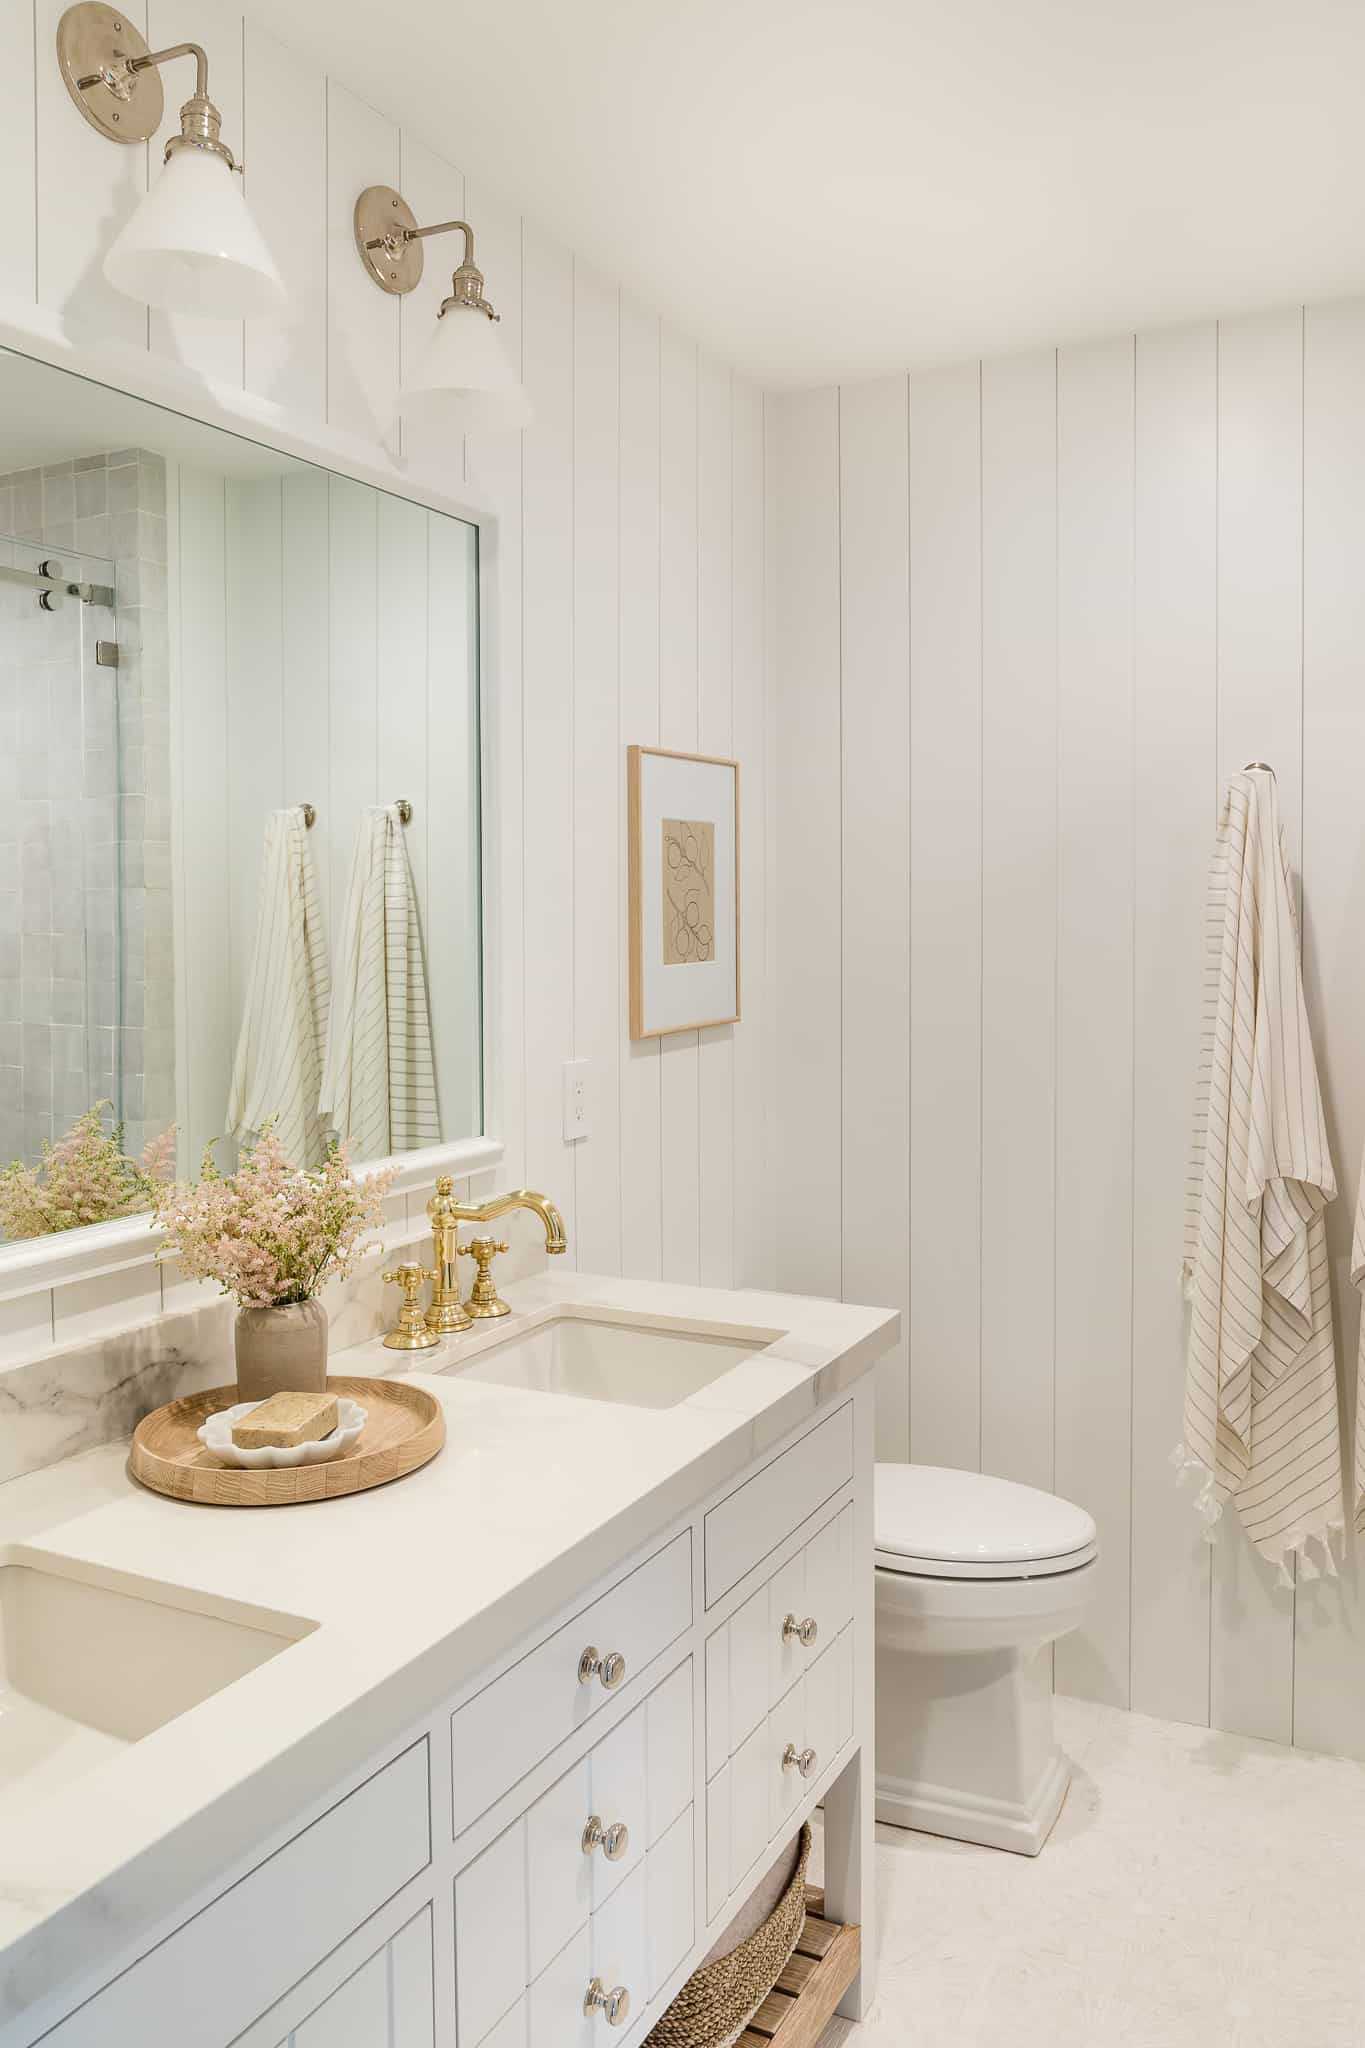 A small primary bathroom lined with a crisp all-white palette